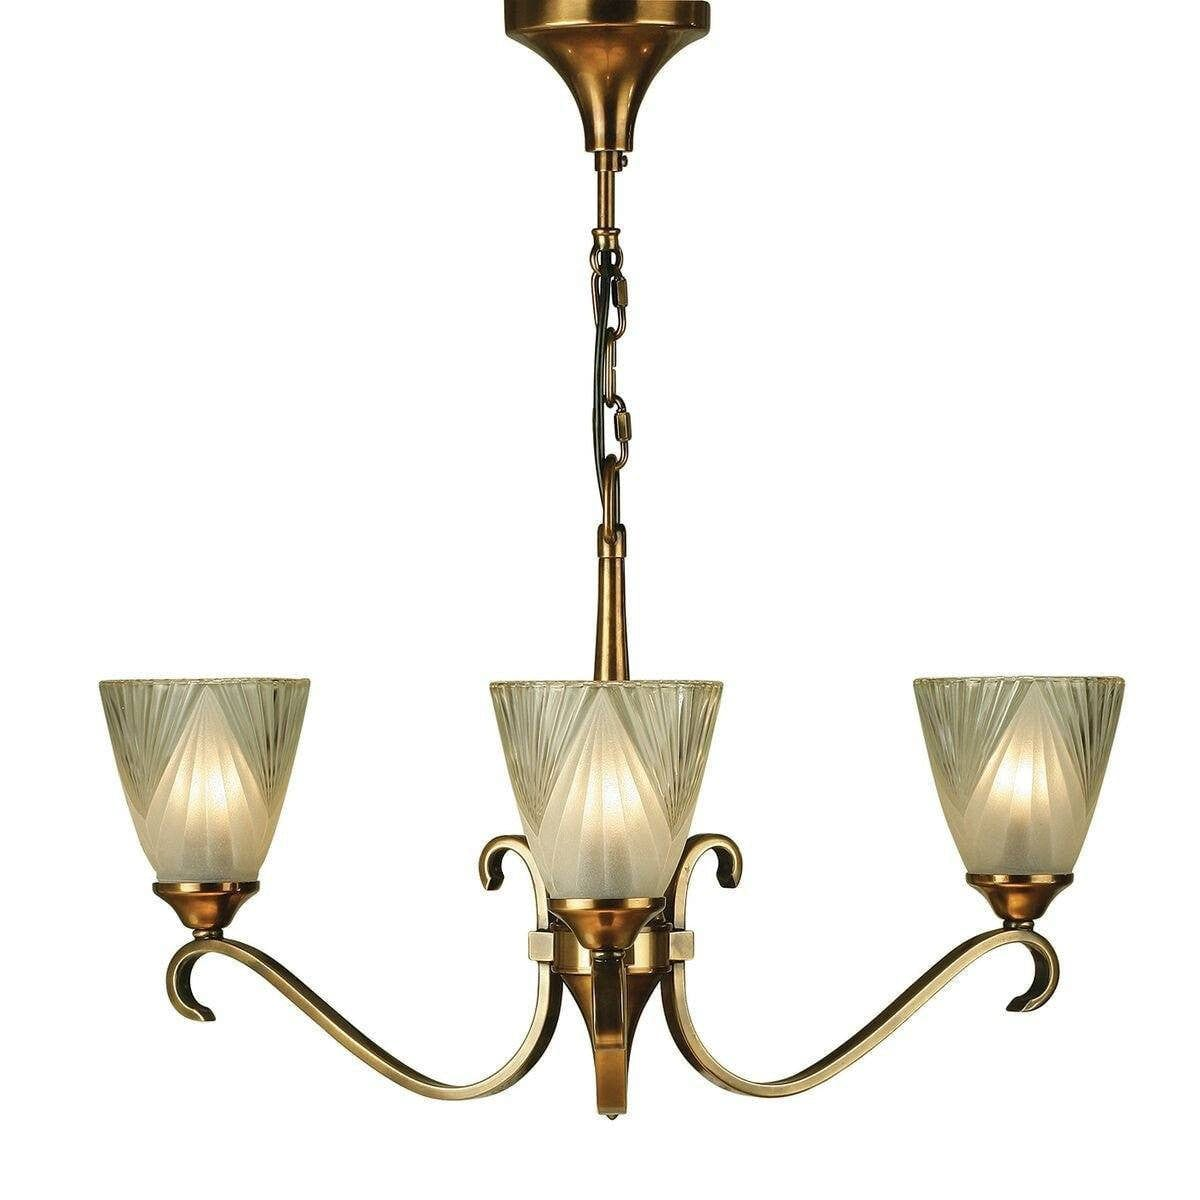 Art Deco Ceiling Light - Columbia 3 Light Brass Finish Chandelier 63436